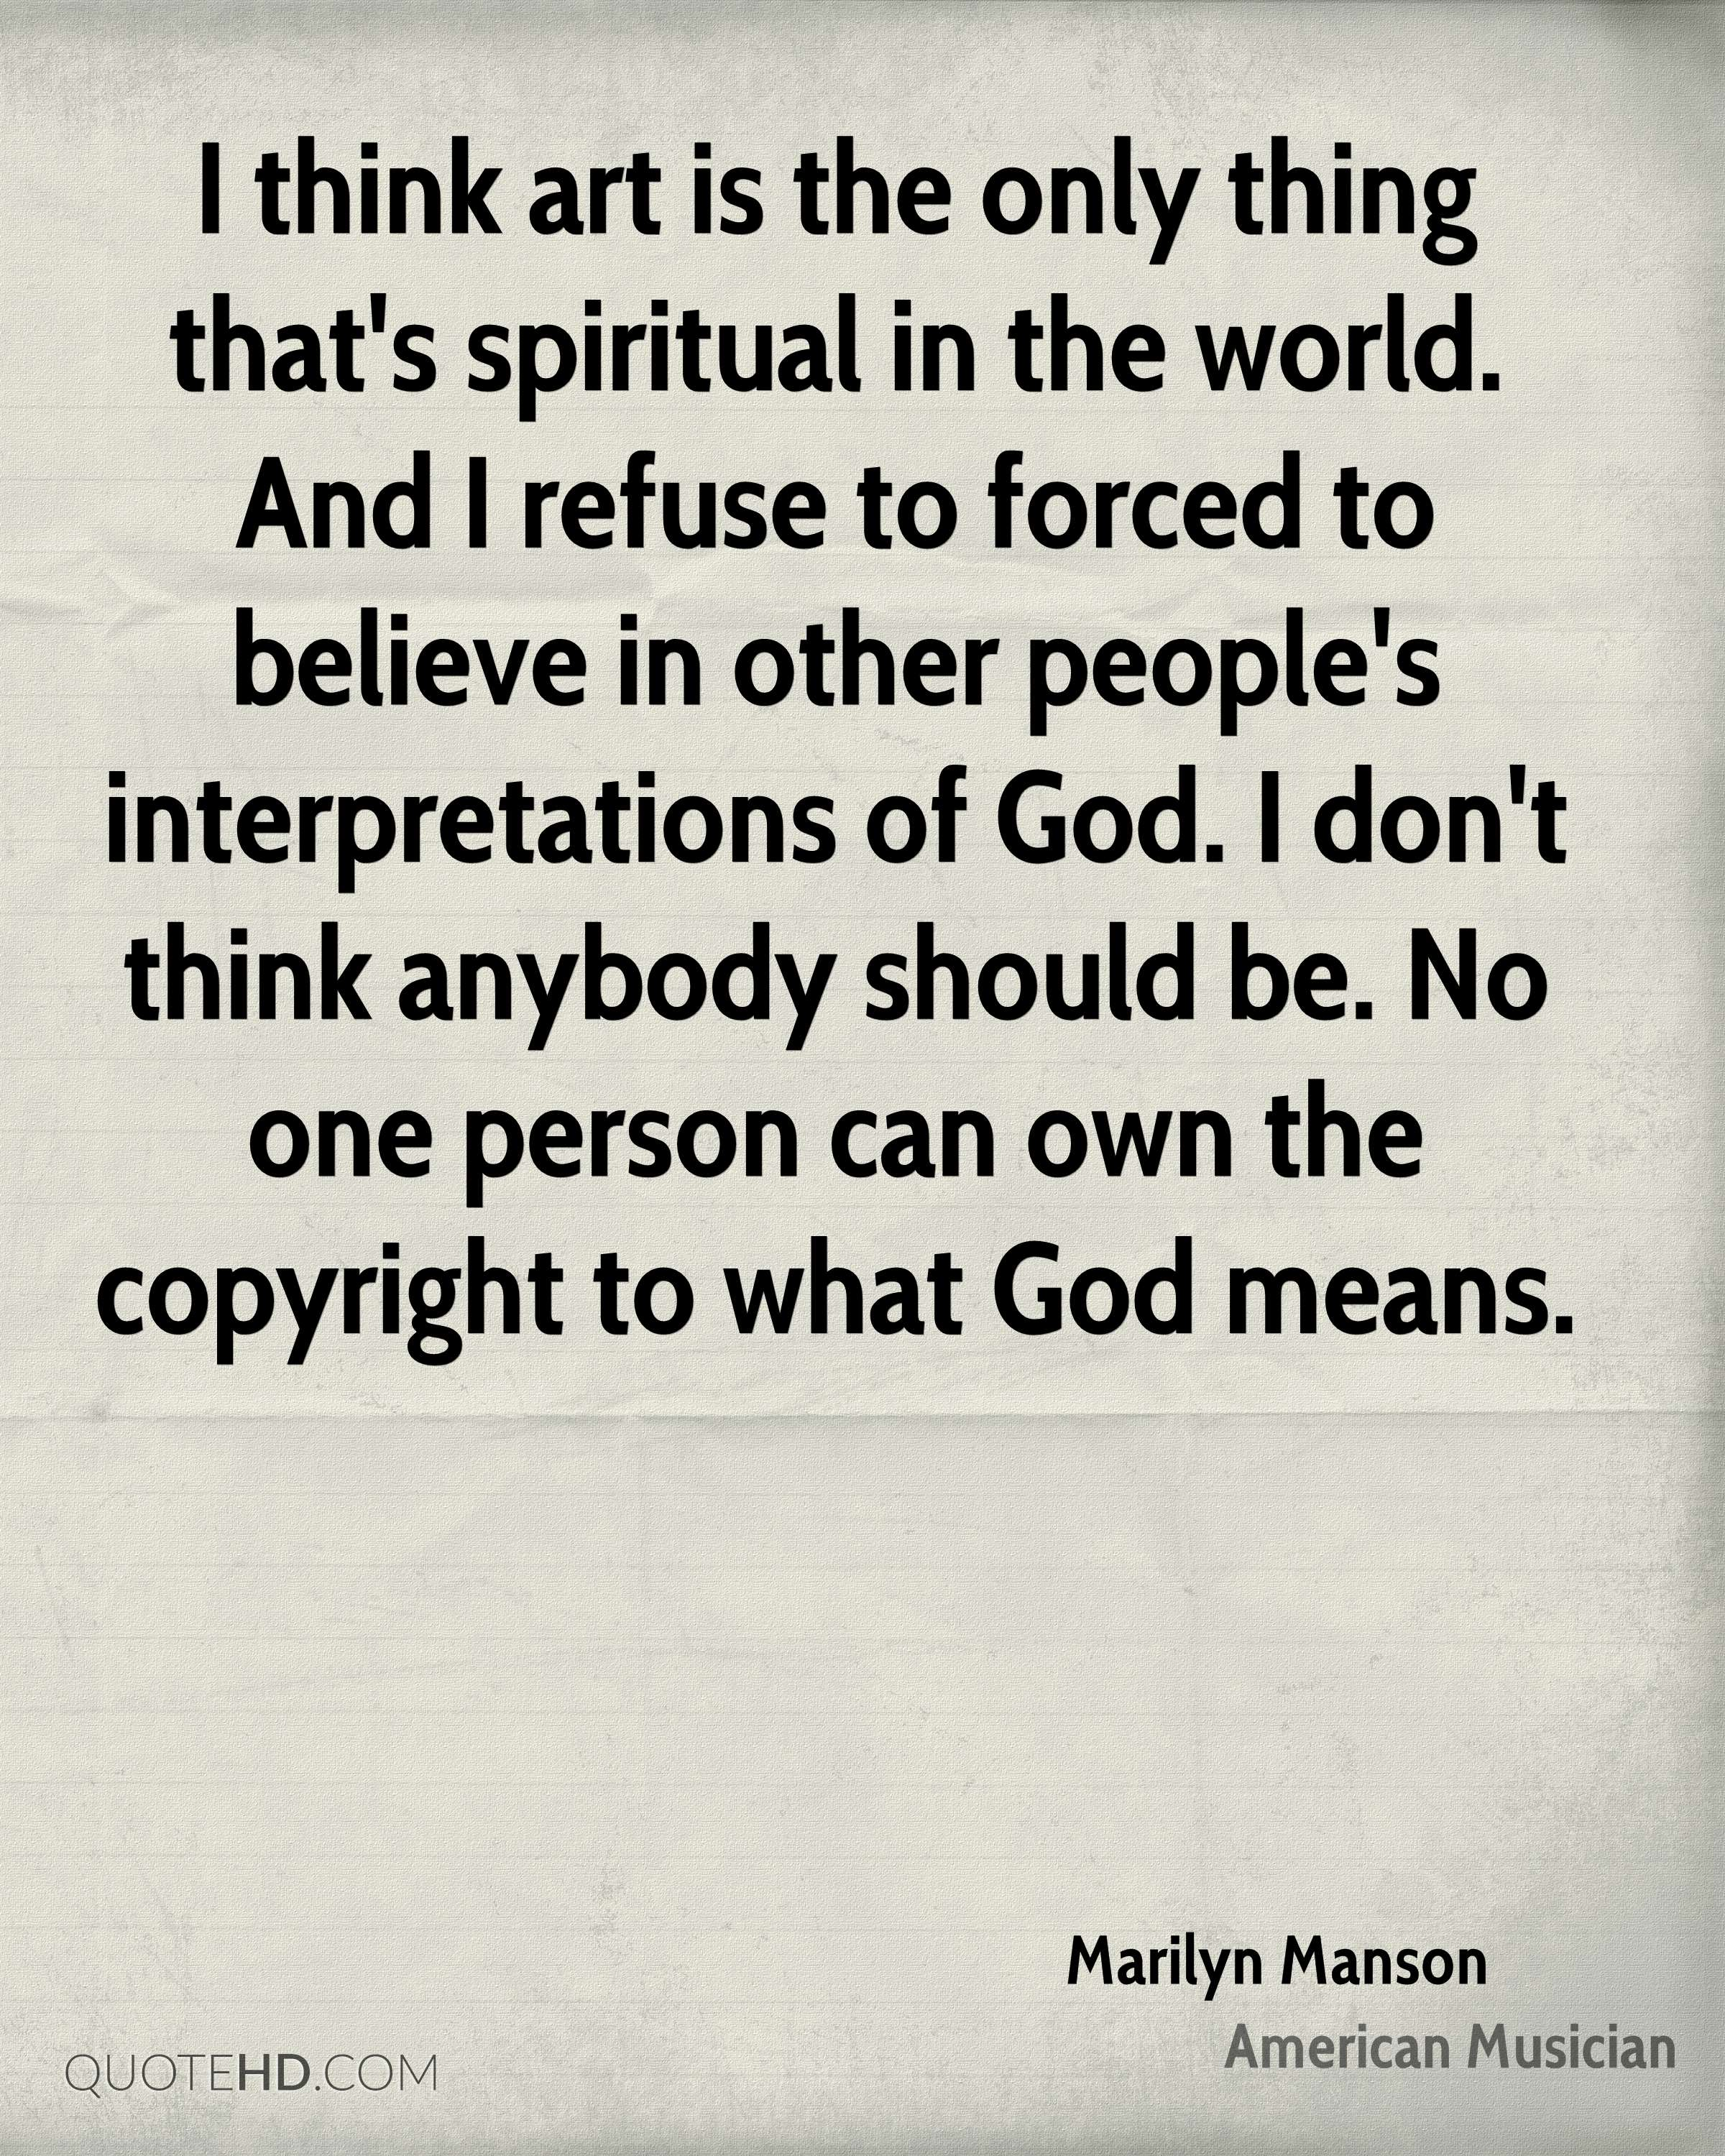 I think art is the only thing that's spiritual in the world. And I refuse to forced to believe in other people's interpretations of God. I don't think anybody should be. No one person can own the copyright to what God means.